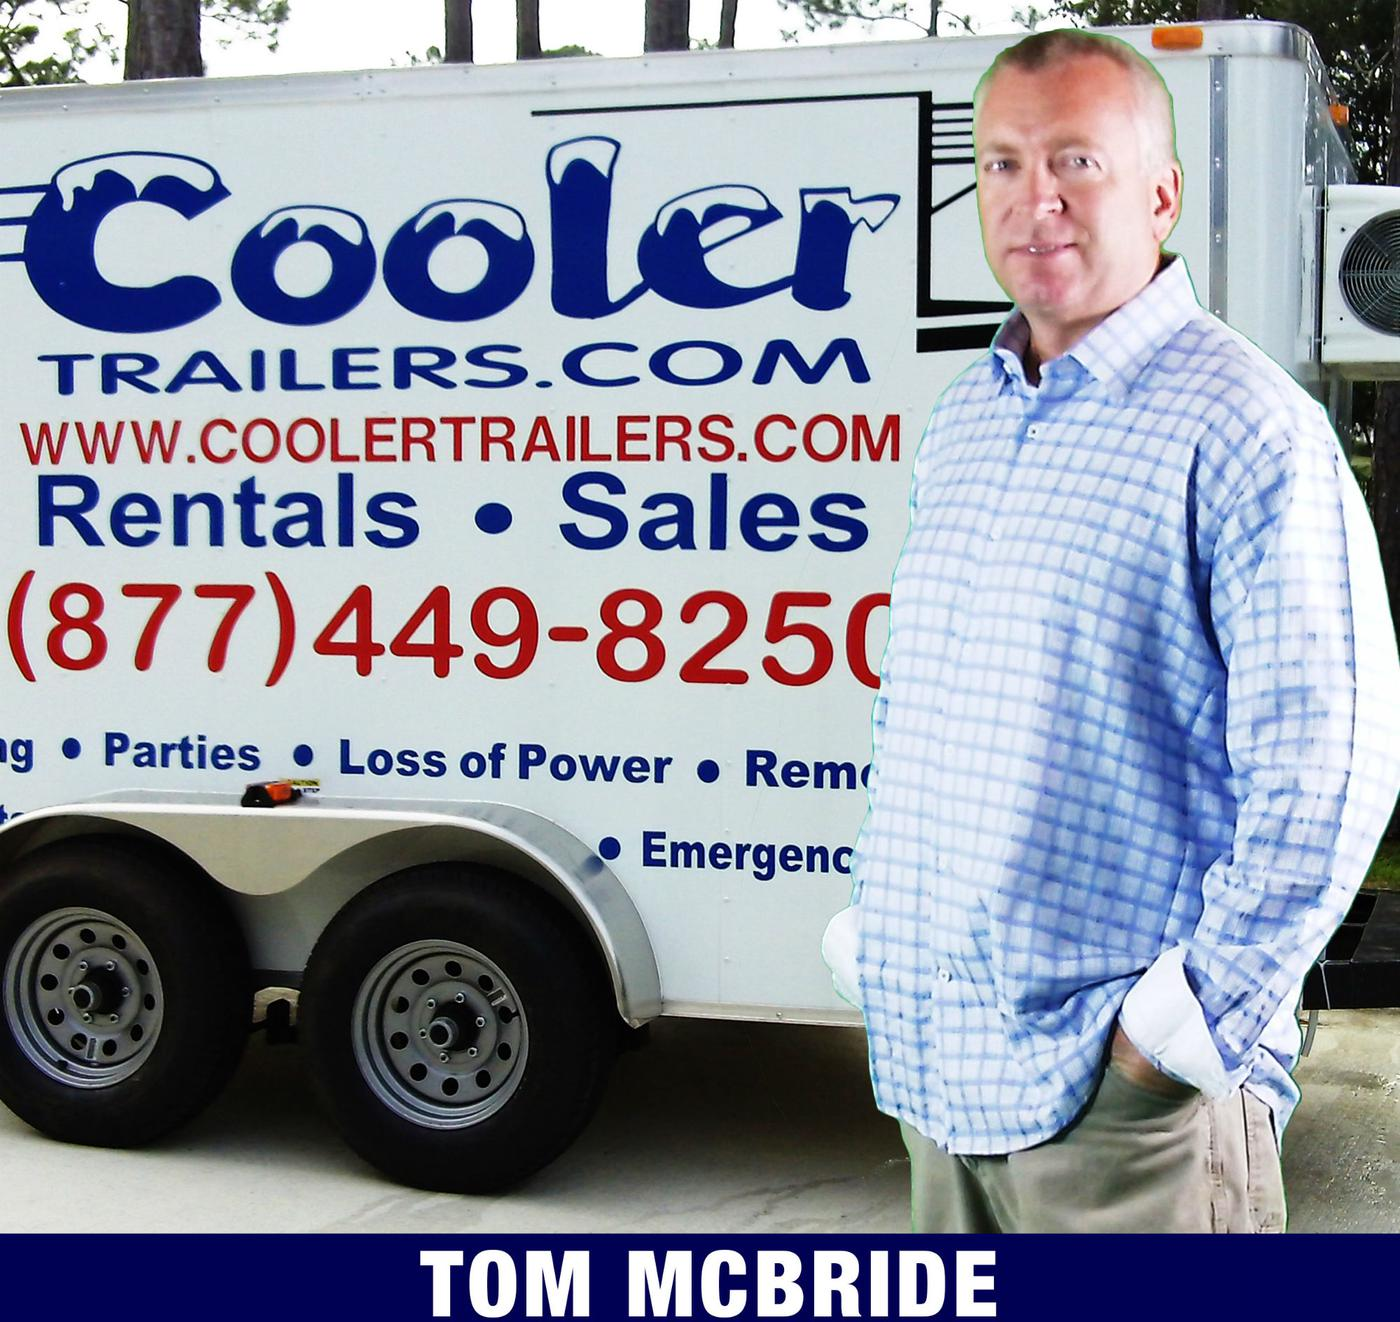 Cooler Trailers Superior Design- Small refrigerated trailers